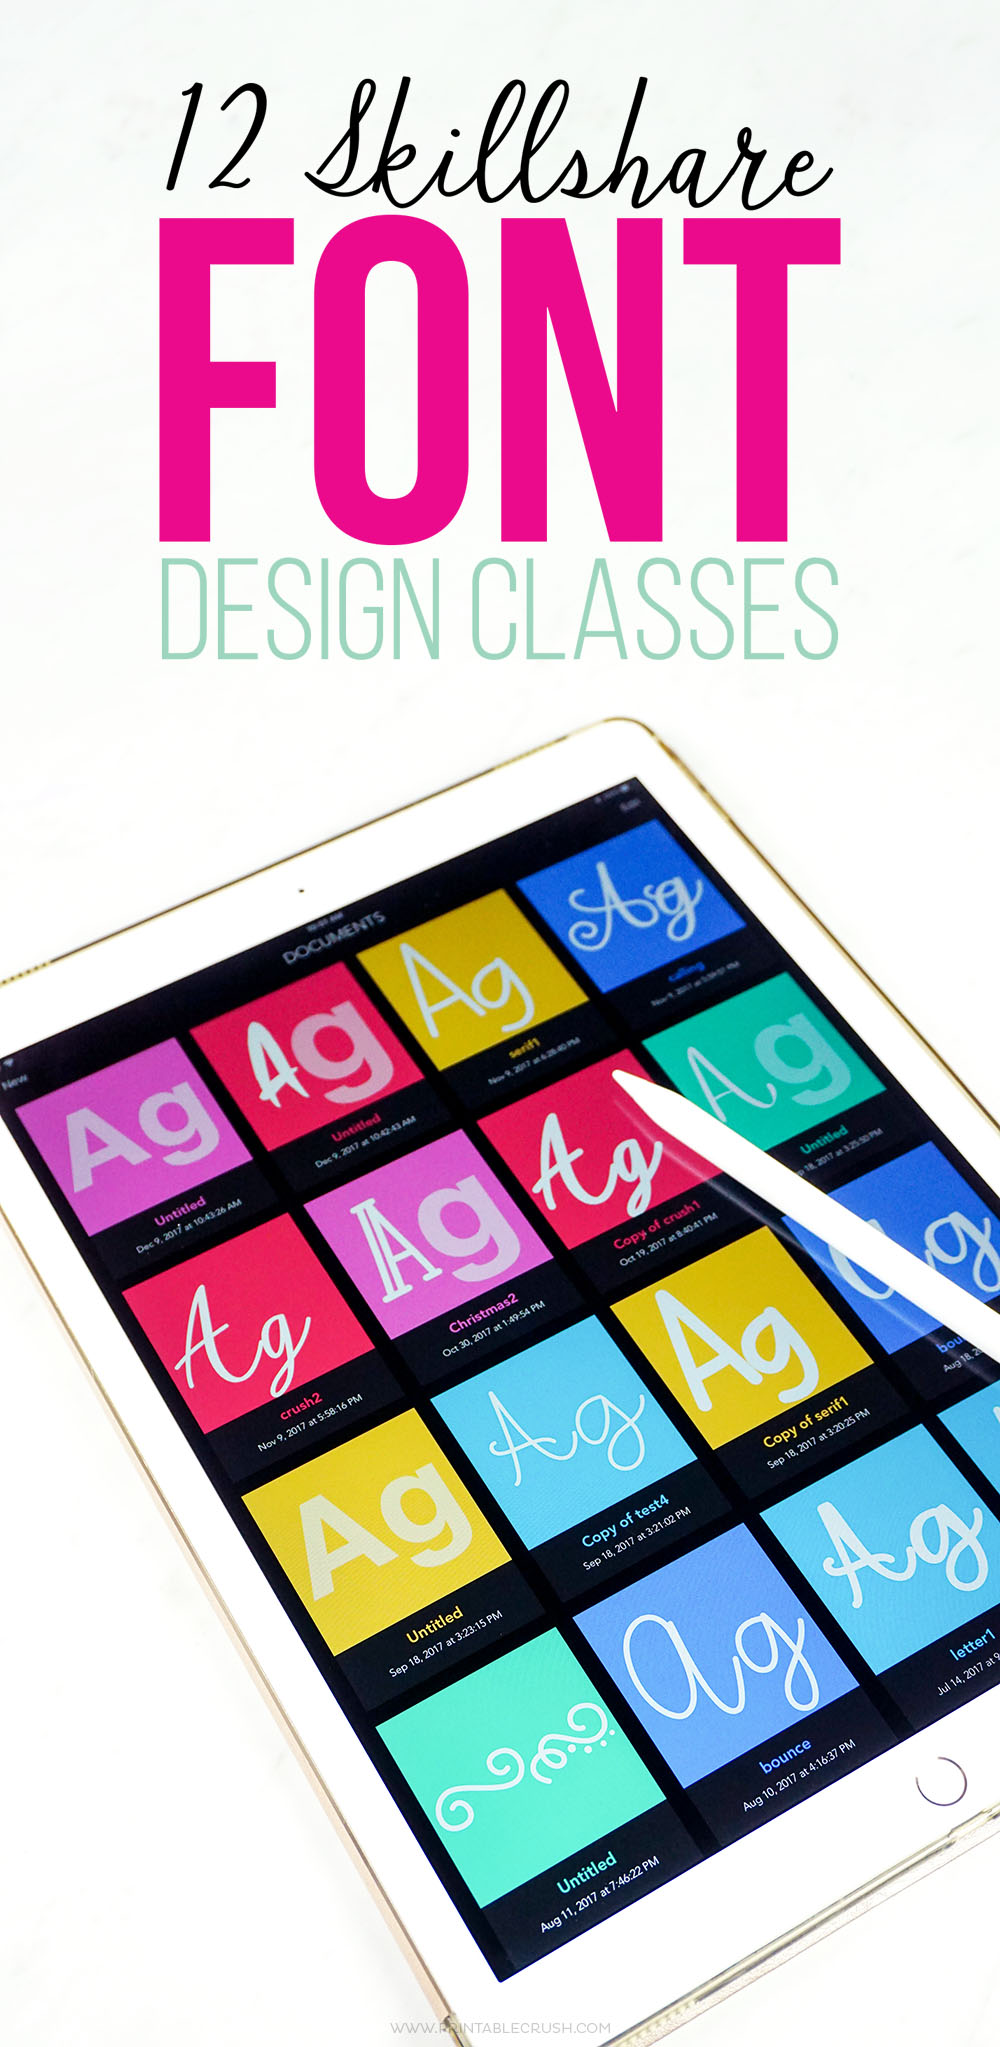 If you'd like to learn to create your own fonts, take these 12 Skillshare Font Design Classes!